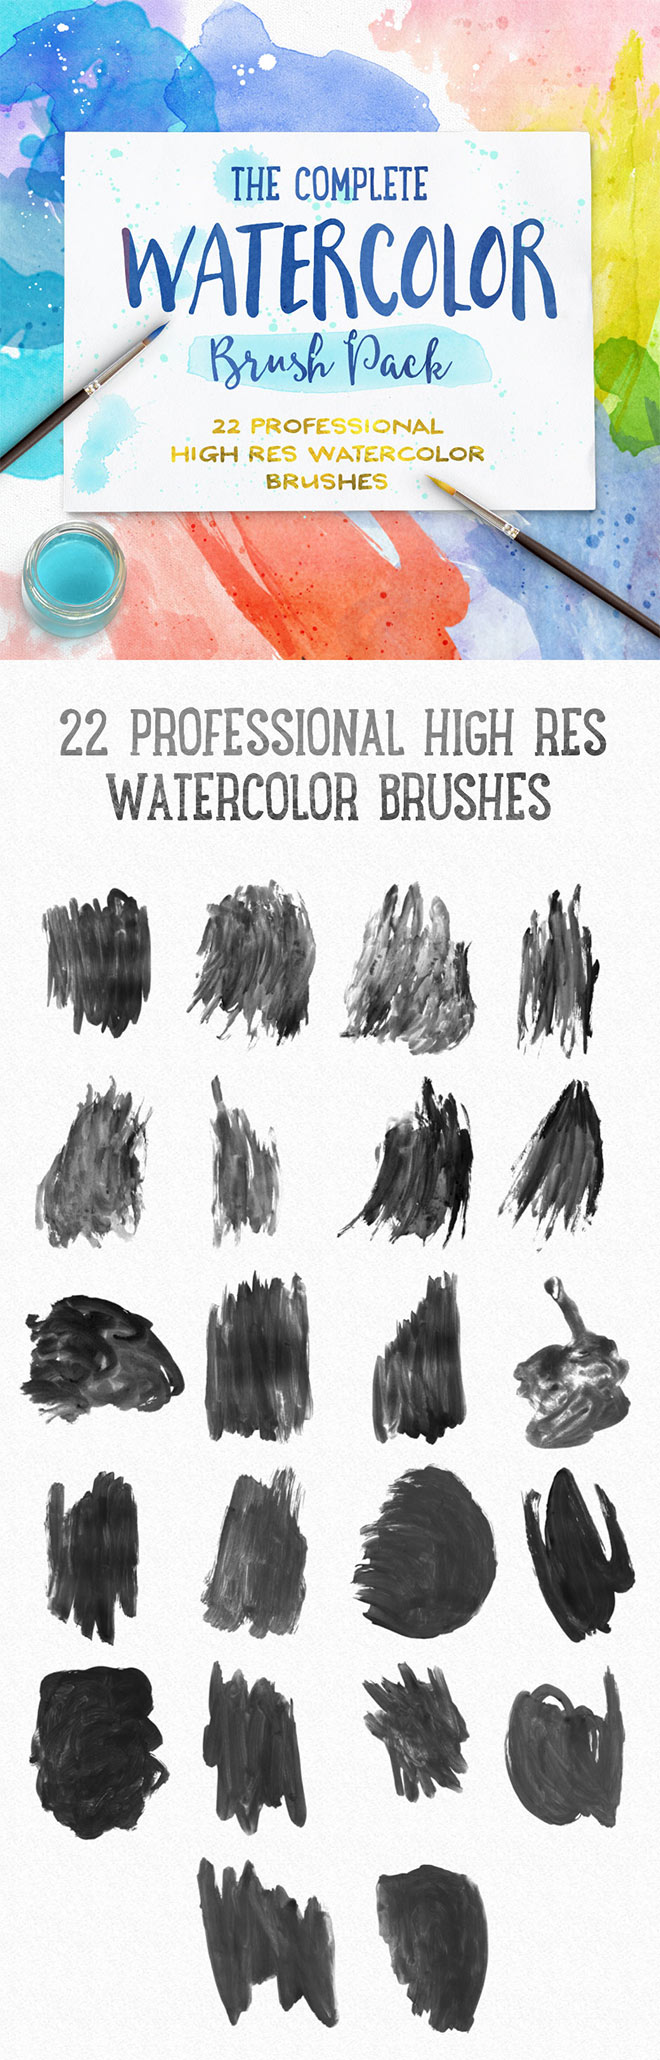 Complete Watercolor Brush Pack